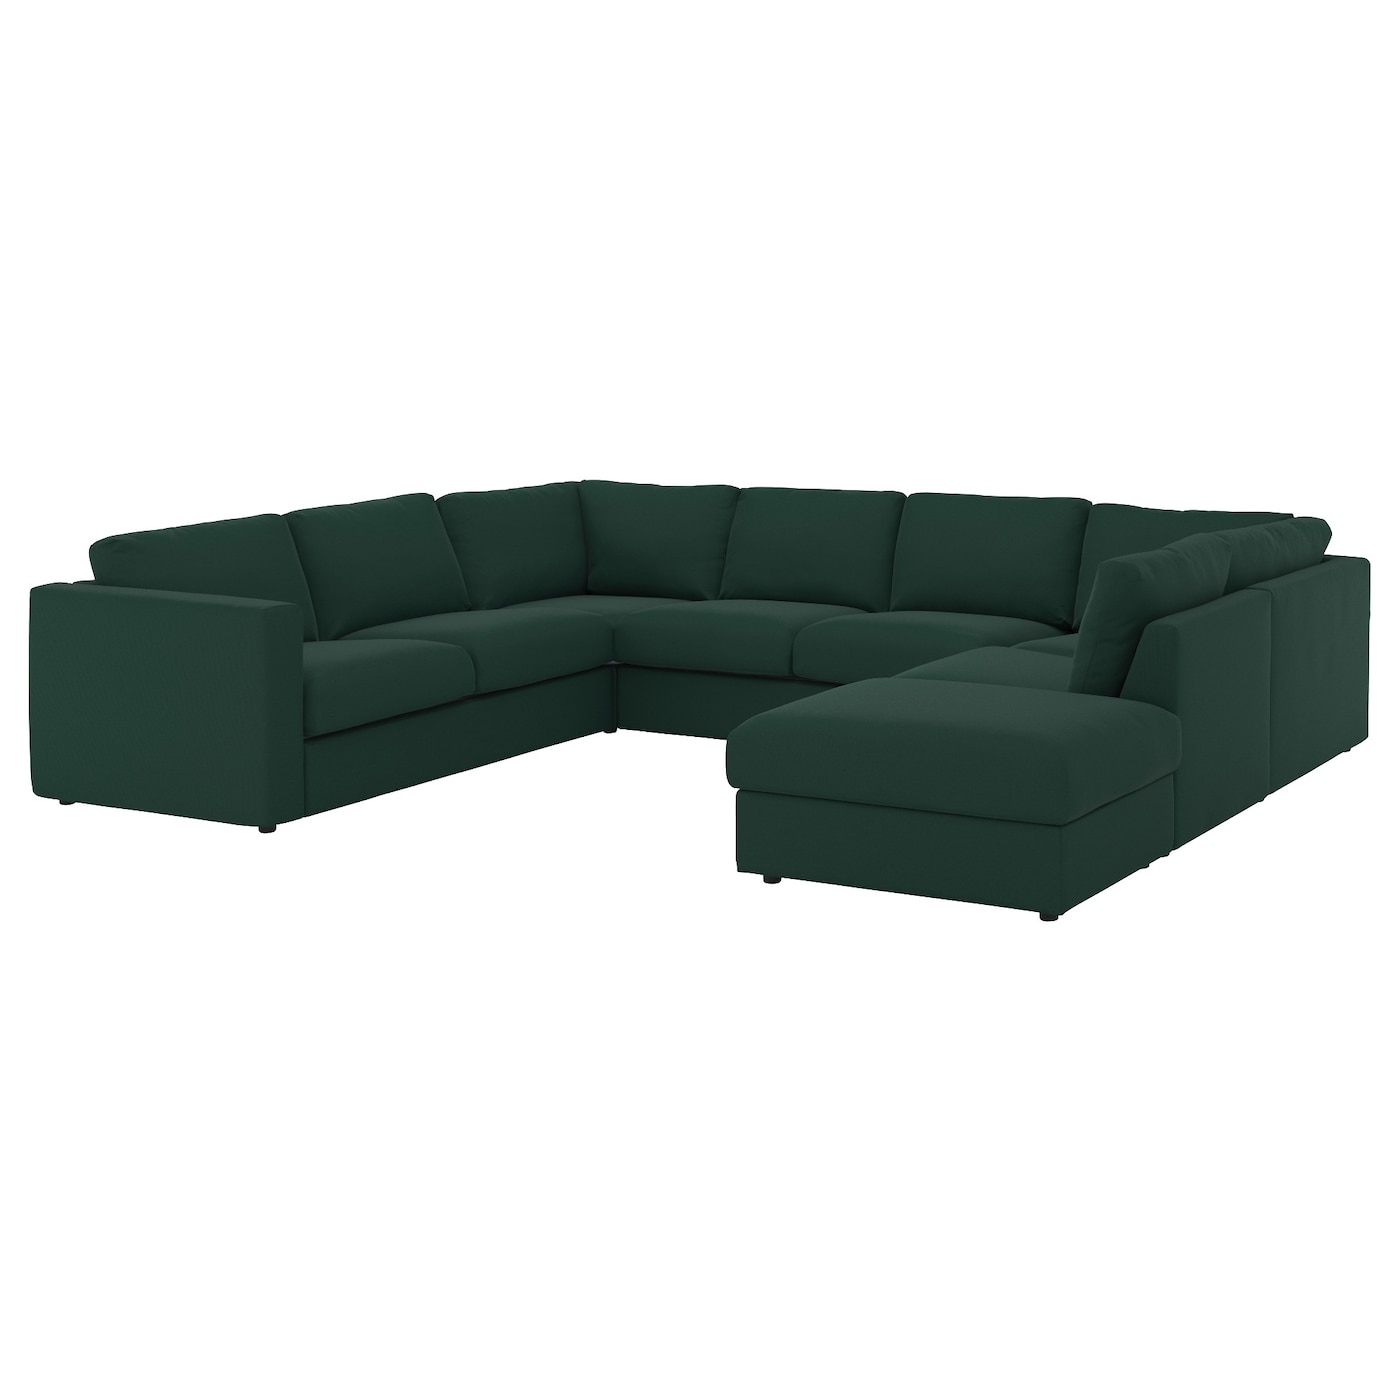 modular sofas sectional sofas ikea. Black Bedroom Furniture Sets. Home Design Ideas